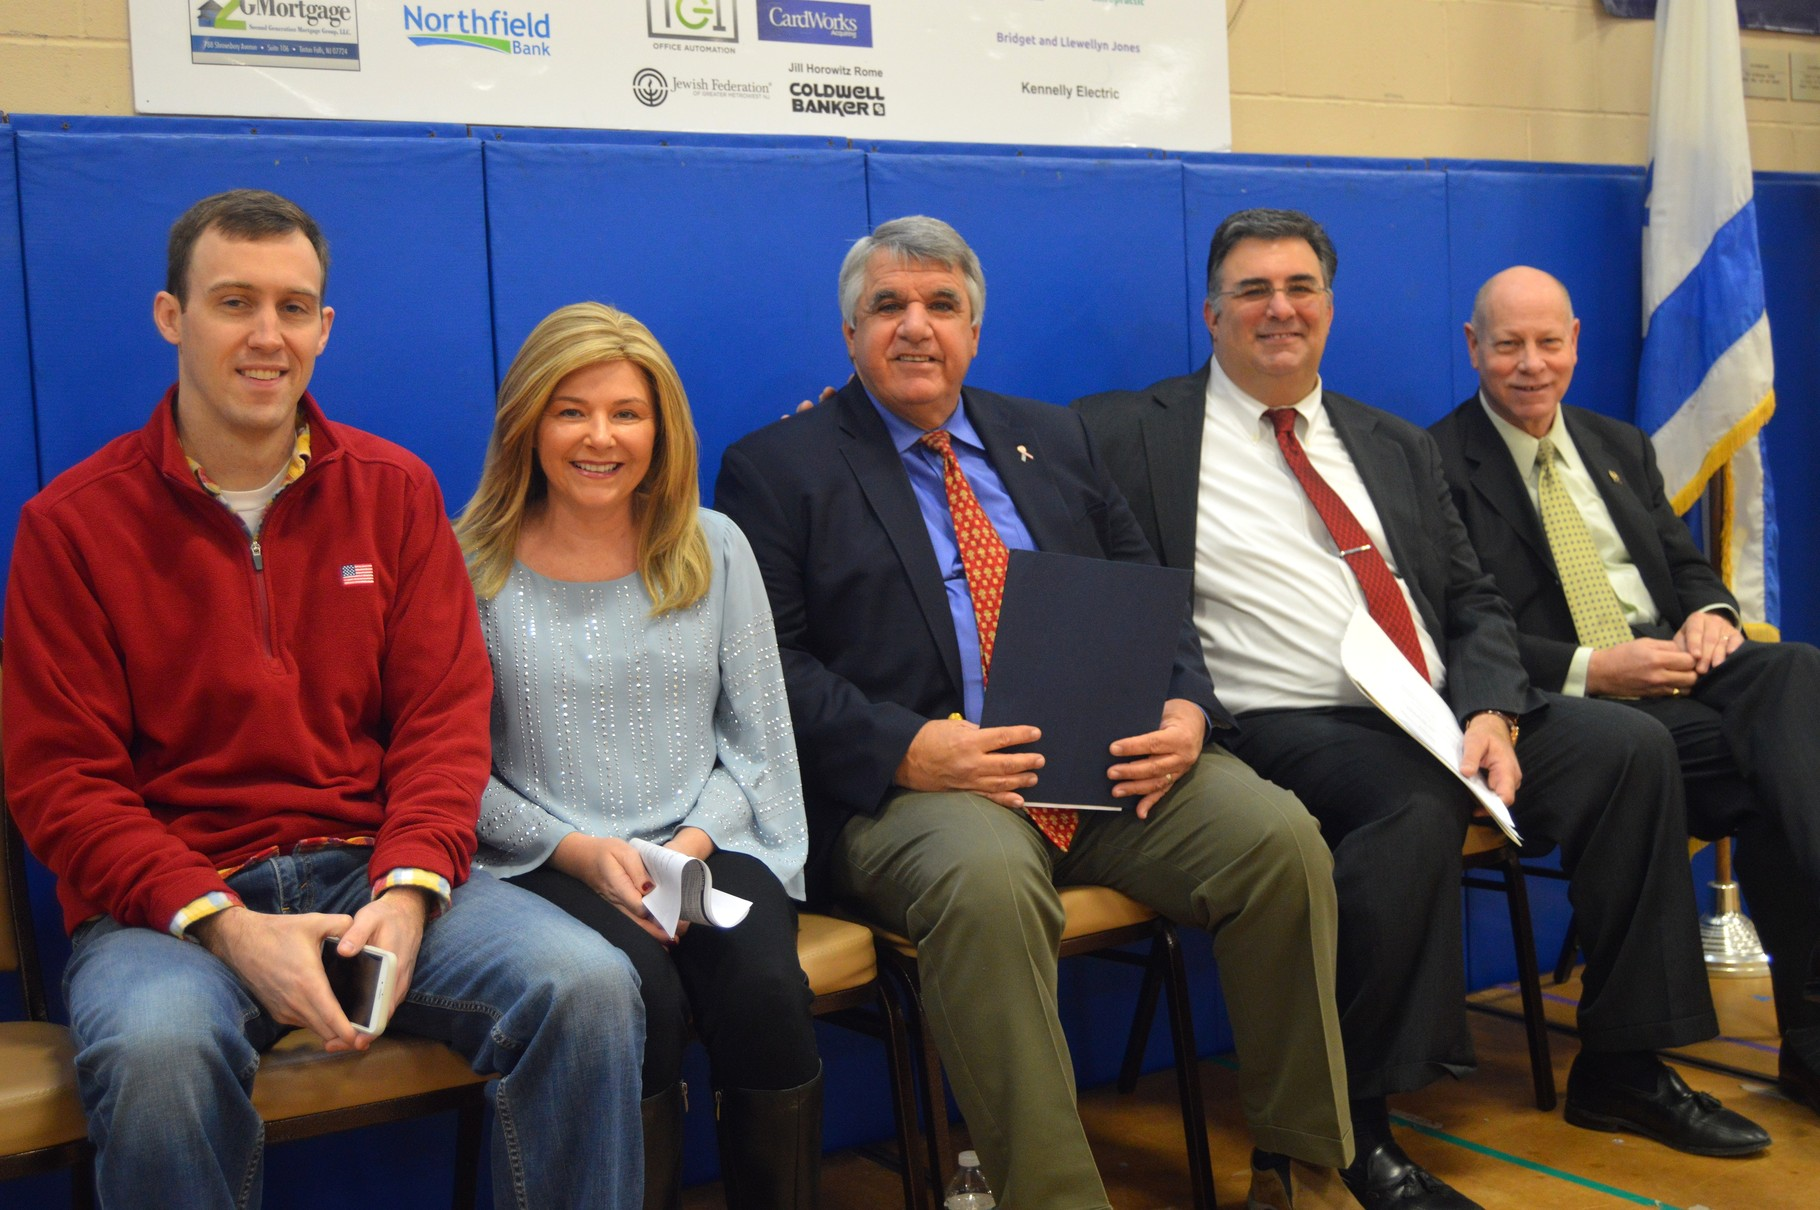 Councilman Llewellyn Jones, Deputy Mayor Rose Checchio, Mayor Kevin Glover, Township Manager Al Mirabella, and Assemblyman Jim Kennedy at the JCC of Central Jersey